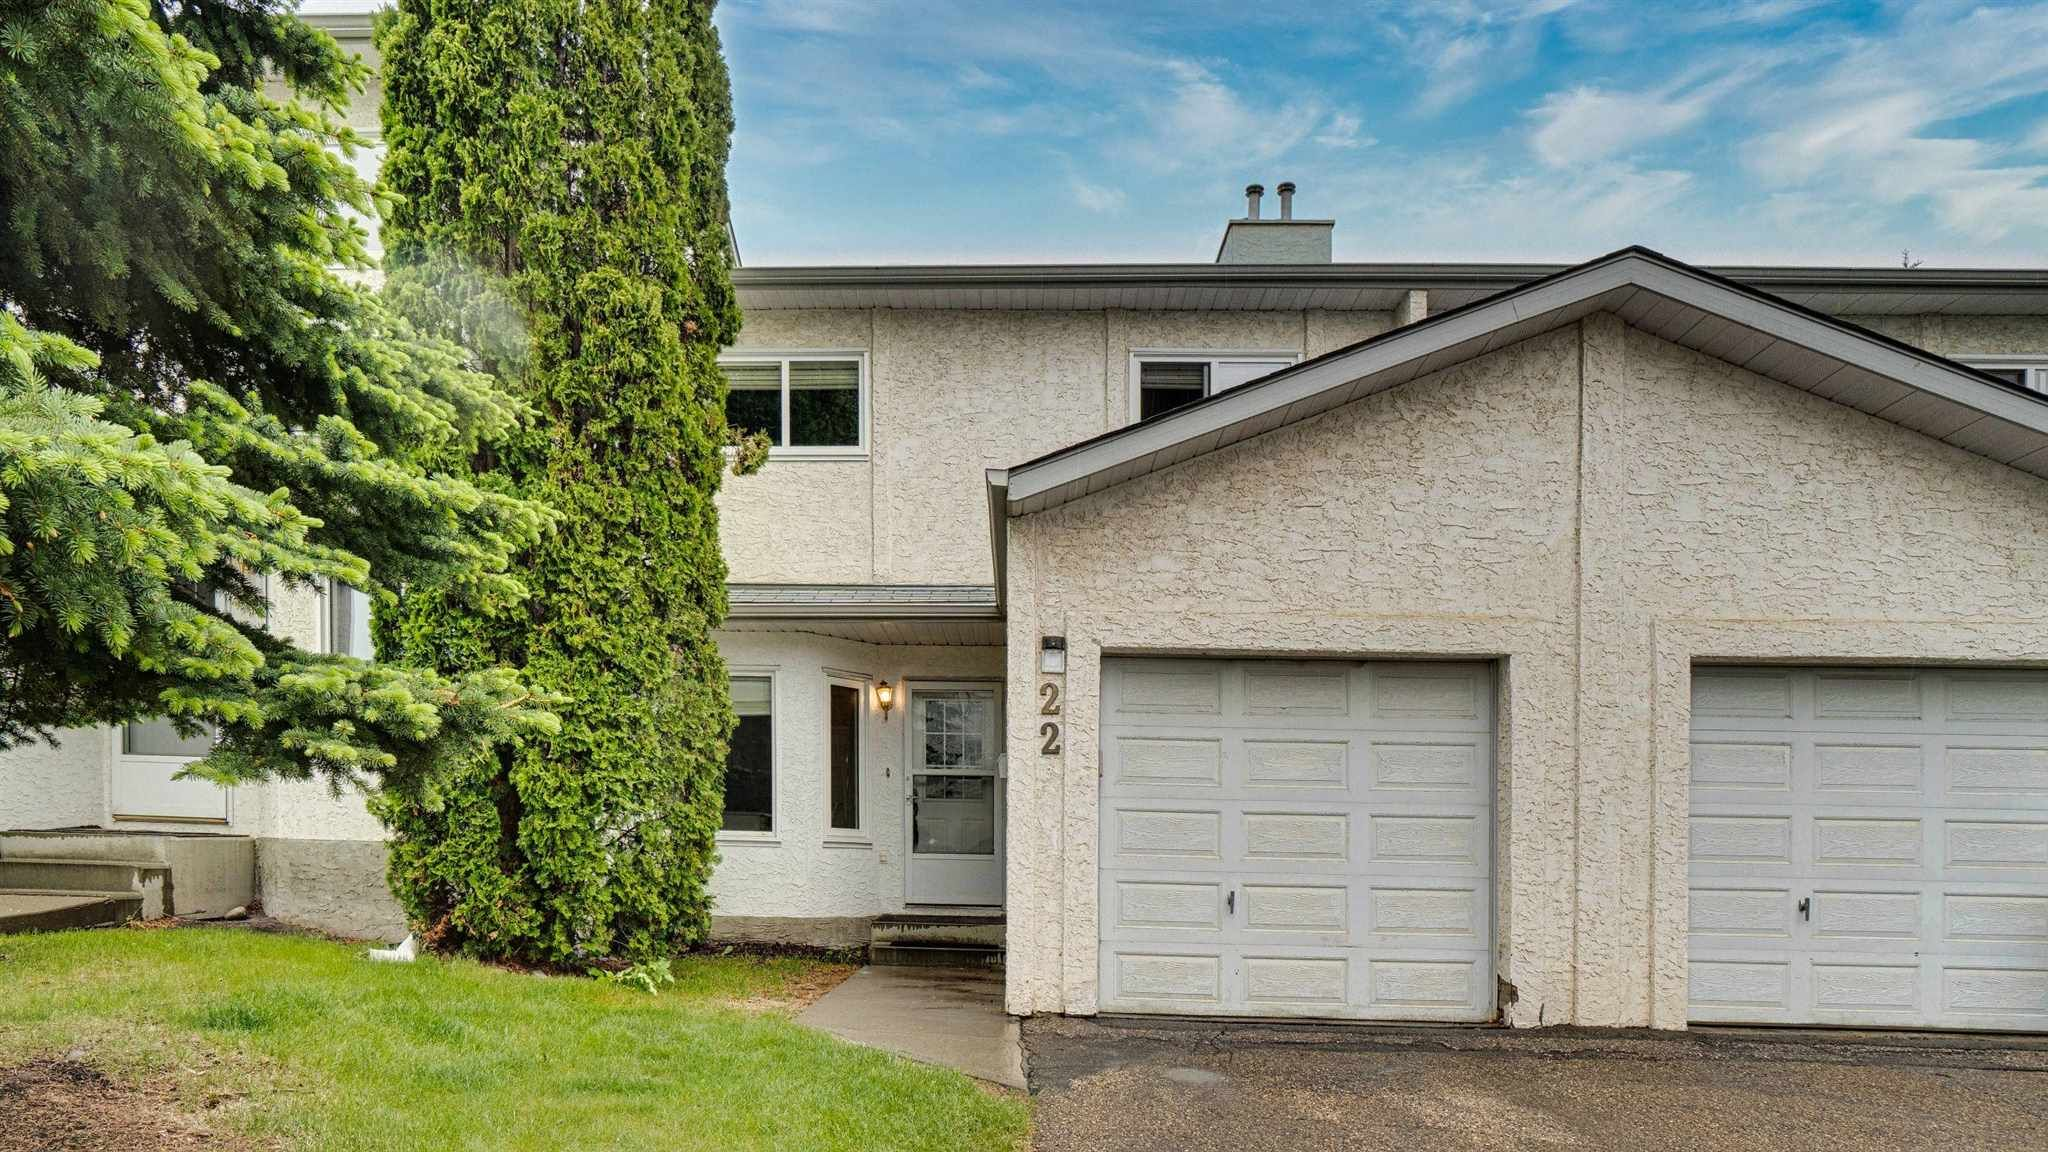 Main Photo: 22 3520 60 Street NW in Edmonton: Zone 29 Townhouse for sale : MLS®# E4249028